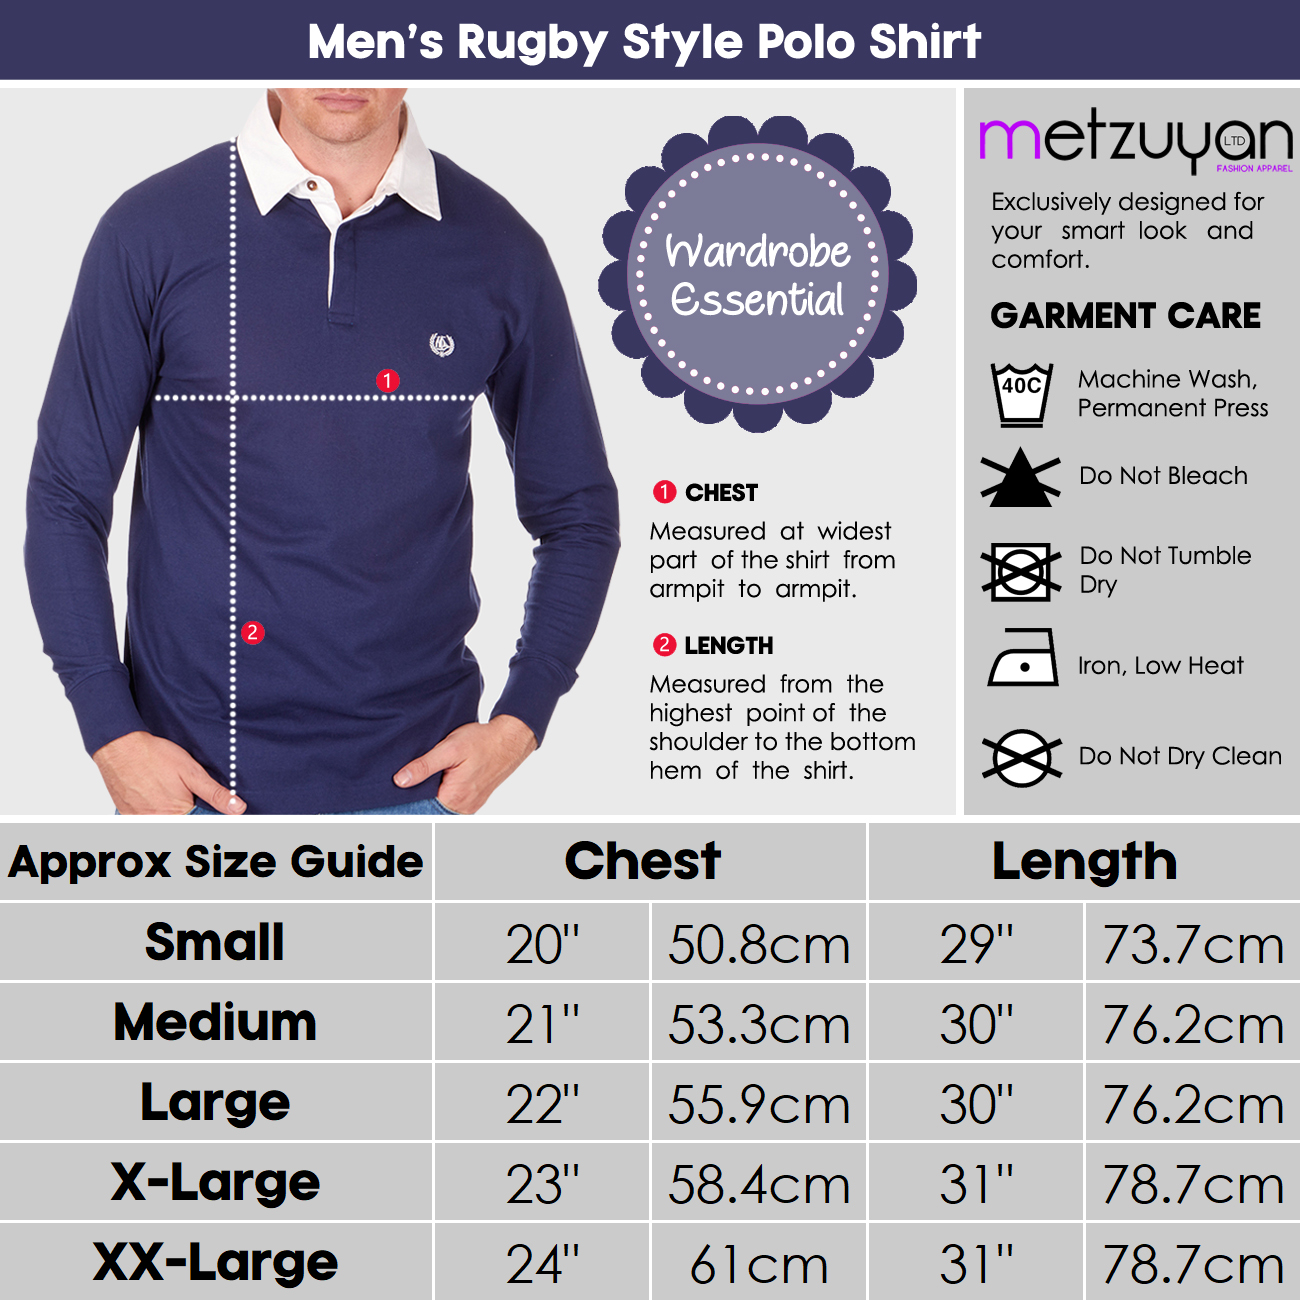 Mens-Rugby-Style-Polo-Shirt-Long-Sleeve-100-Cotton-Sports-Classic-Top-S-2XL thumbnail 3